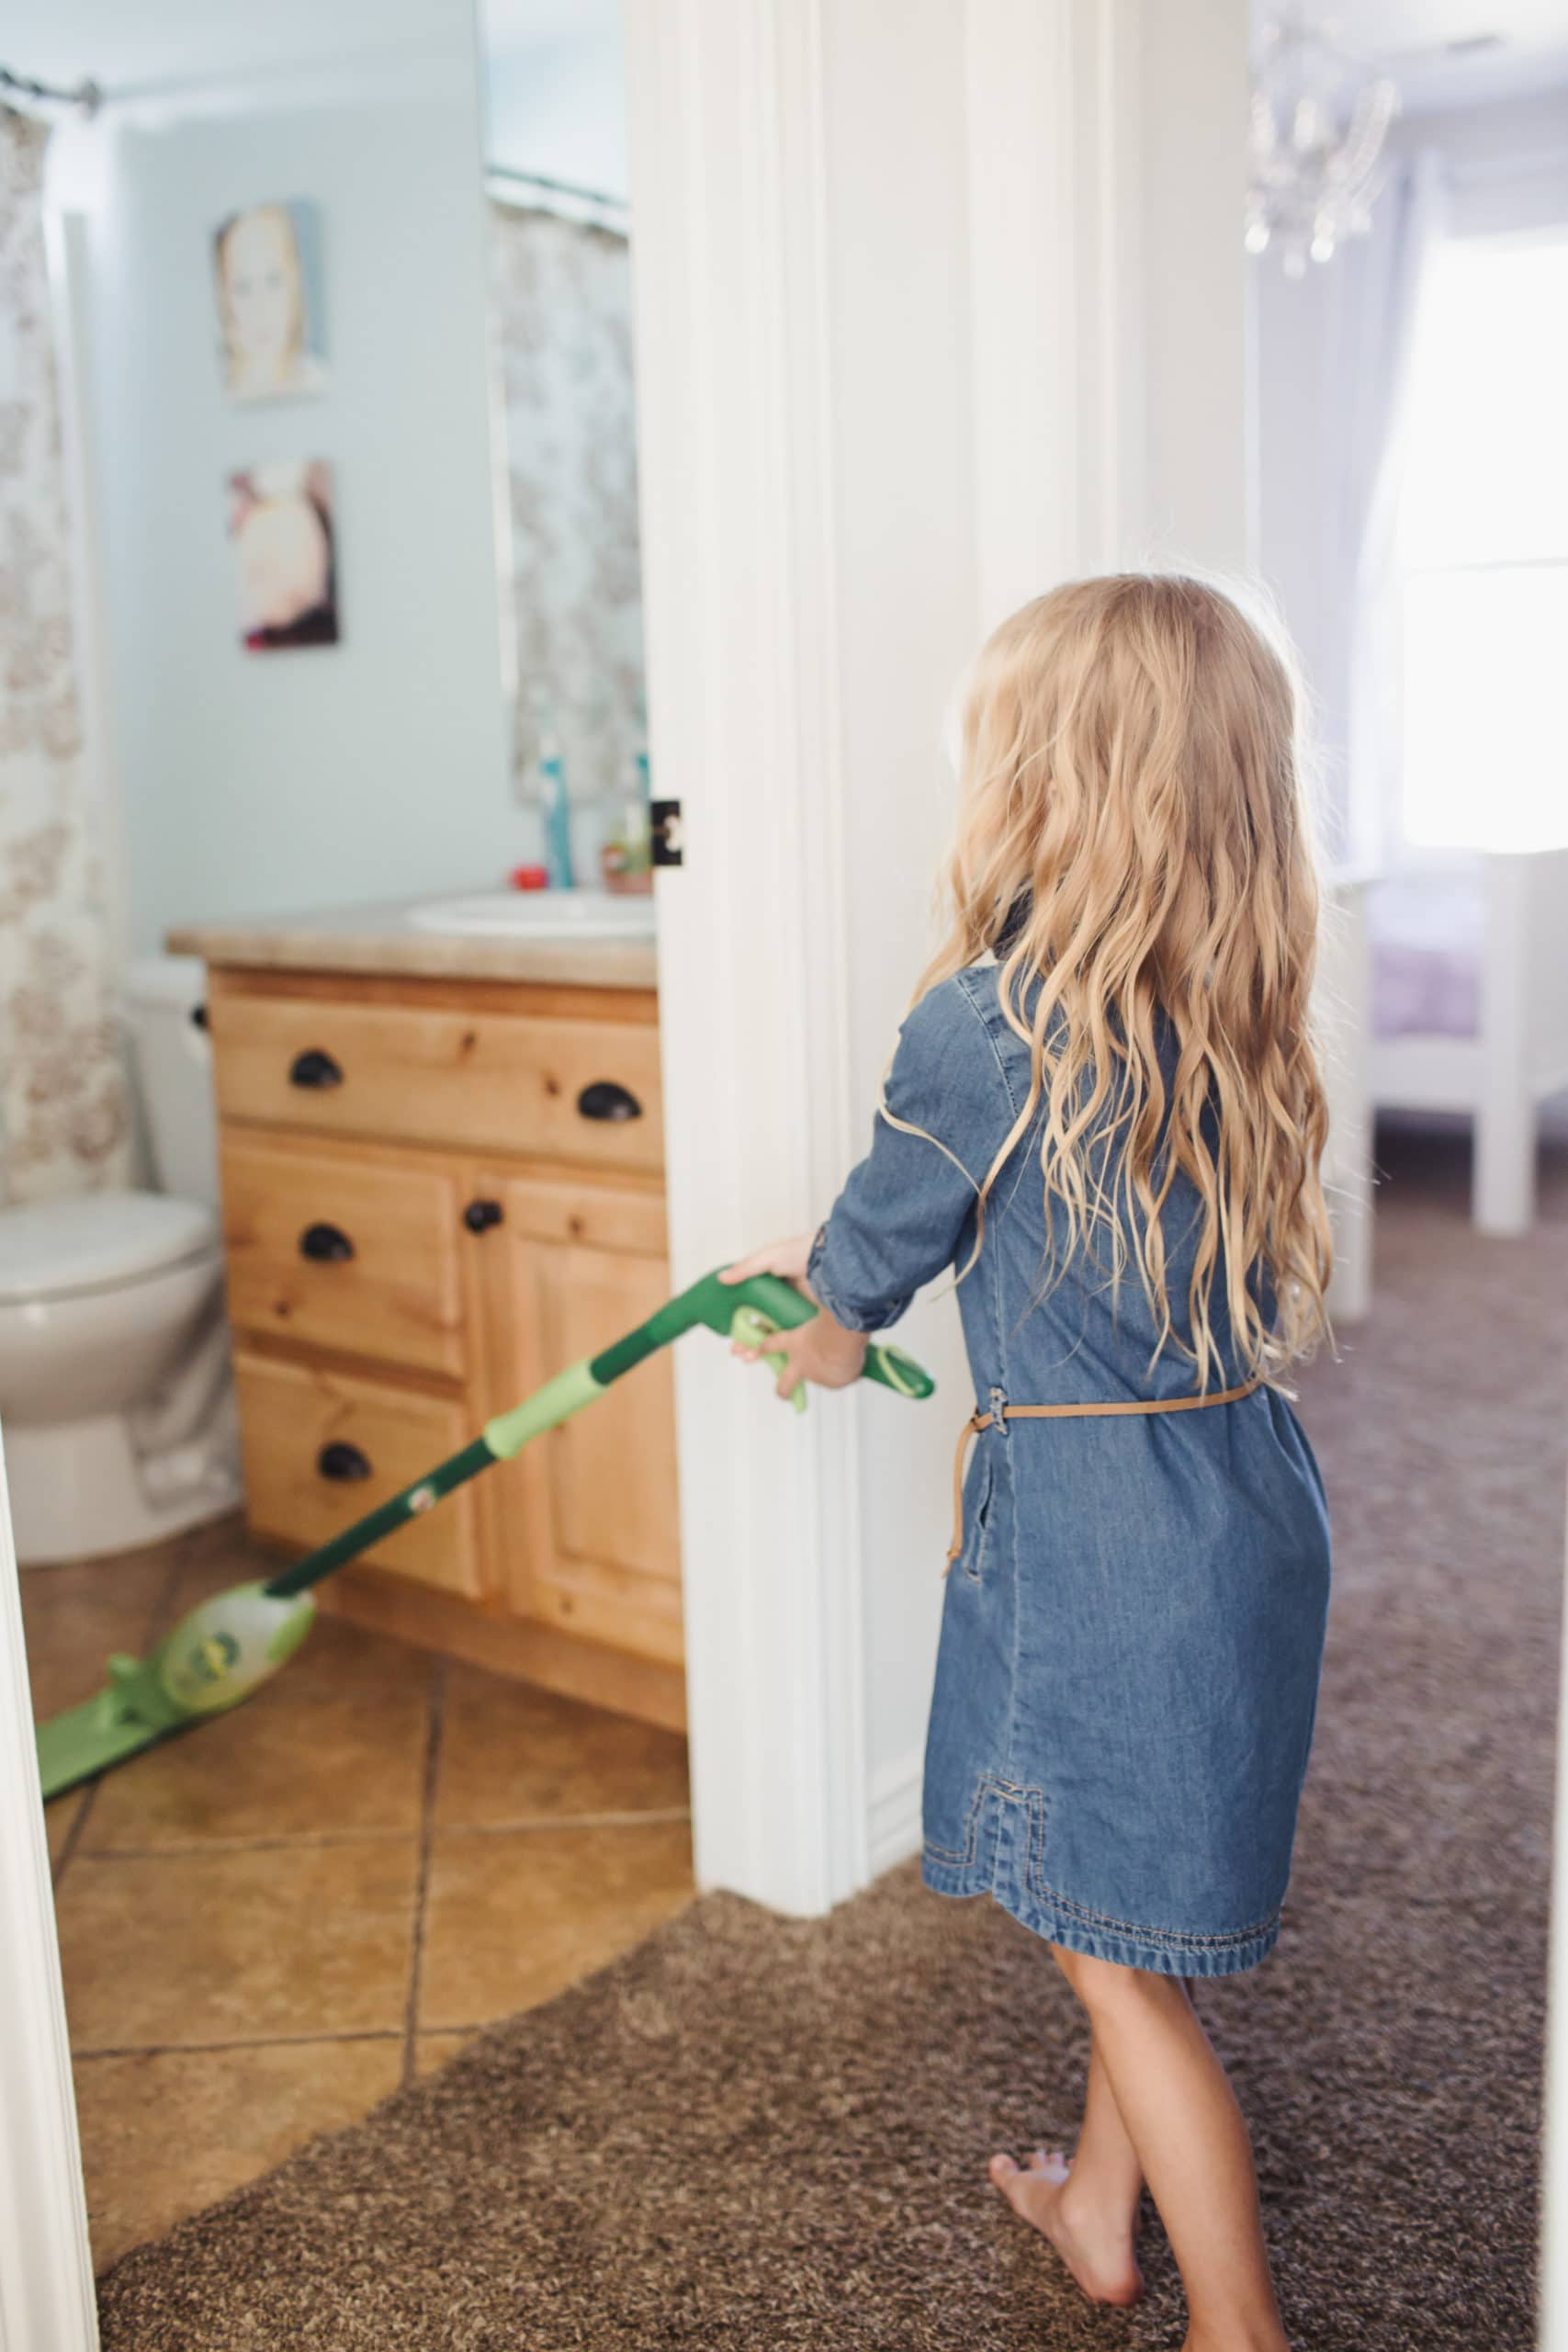 kids cleaning the house